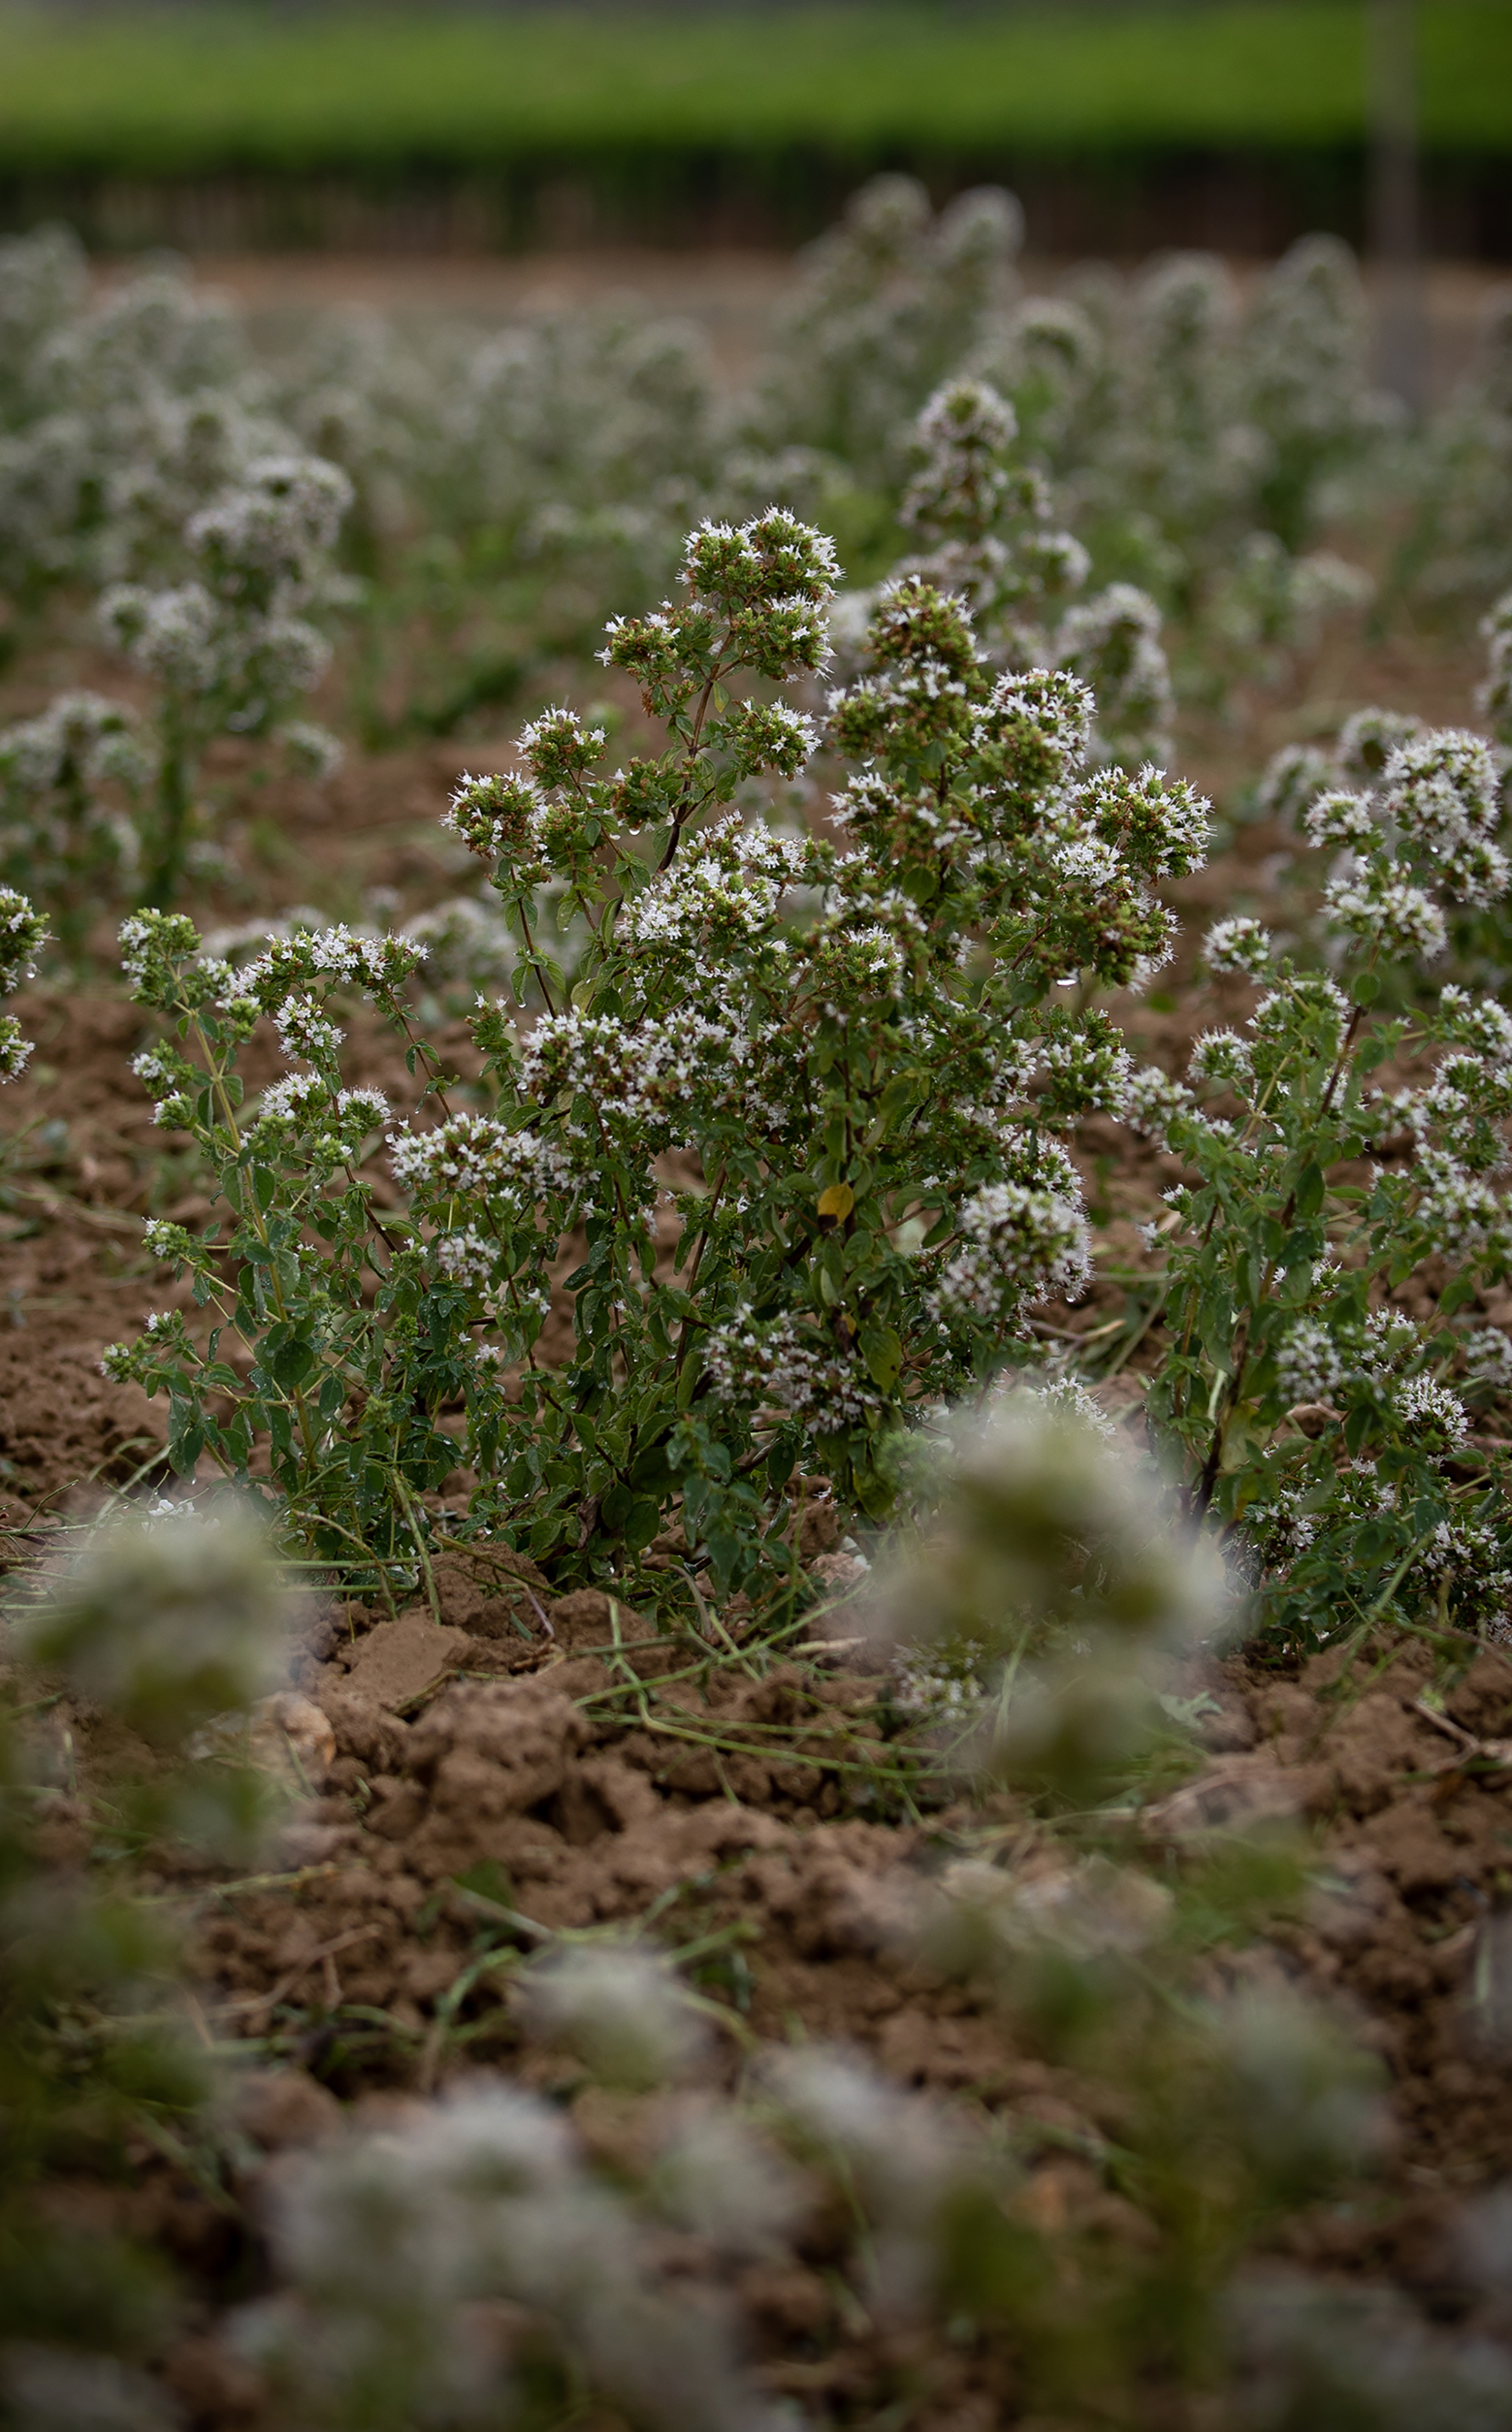 Oregano plants in neat rows display their freshly bloomed white flowers. Clusters of herbs are bursting from rich, light brown, volcanic soil.